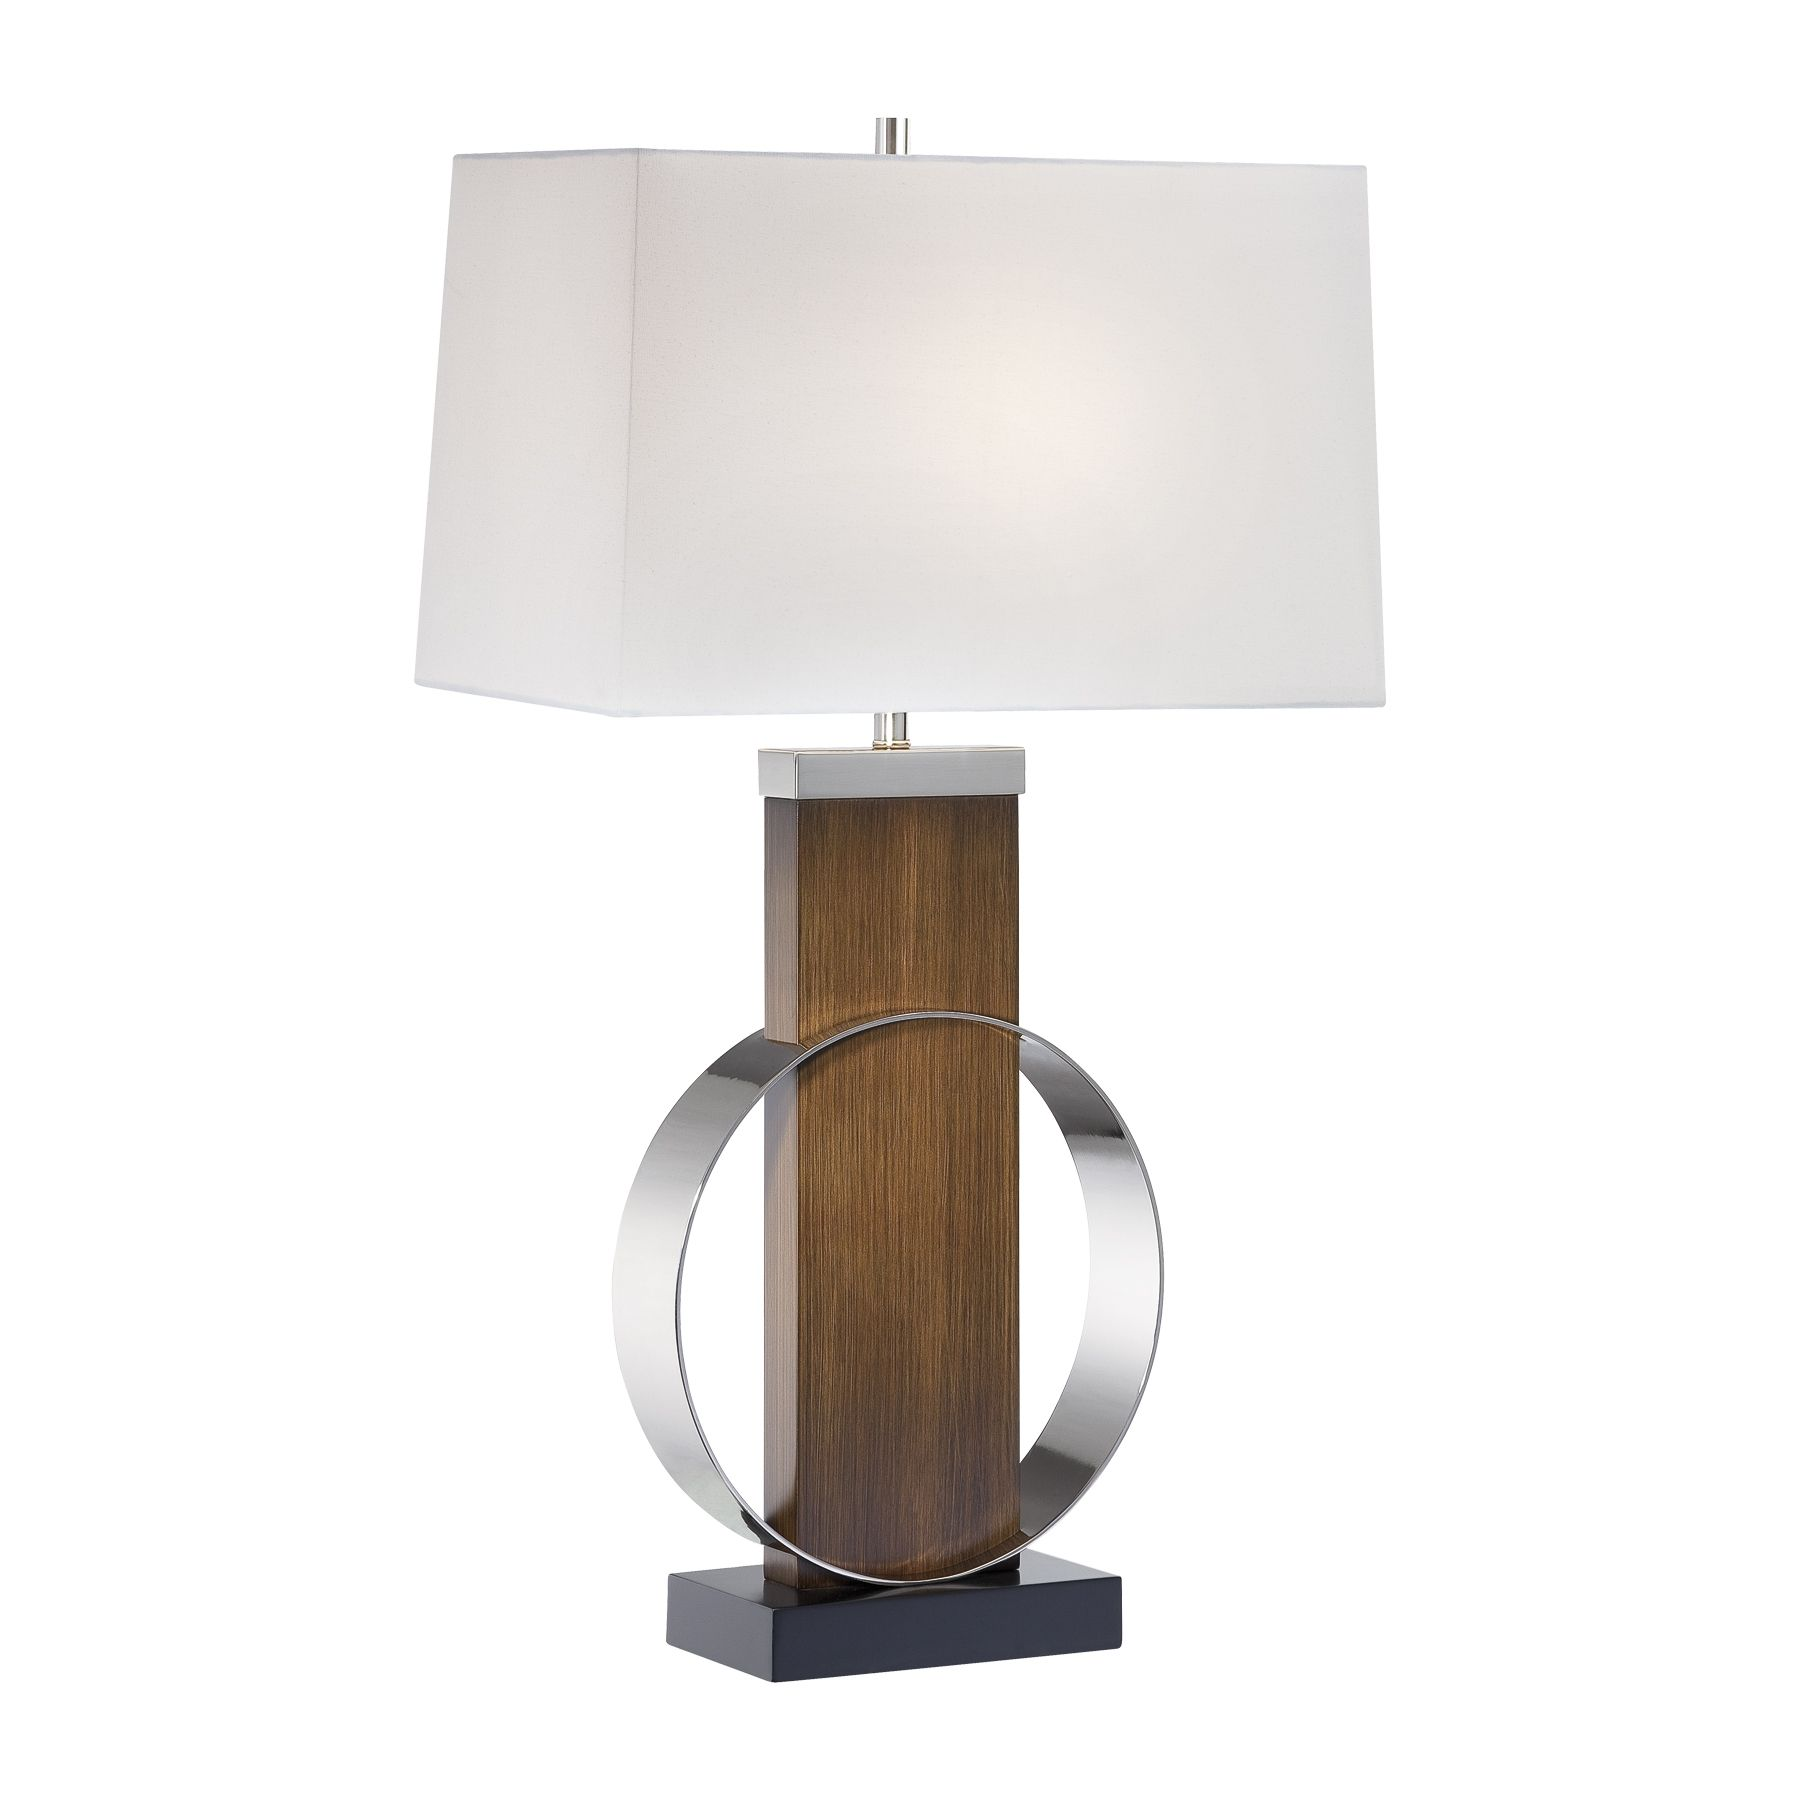 One Light Table Lamp Table Lamp Nickel Table Lamps Lamp